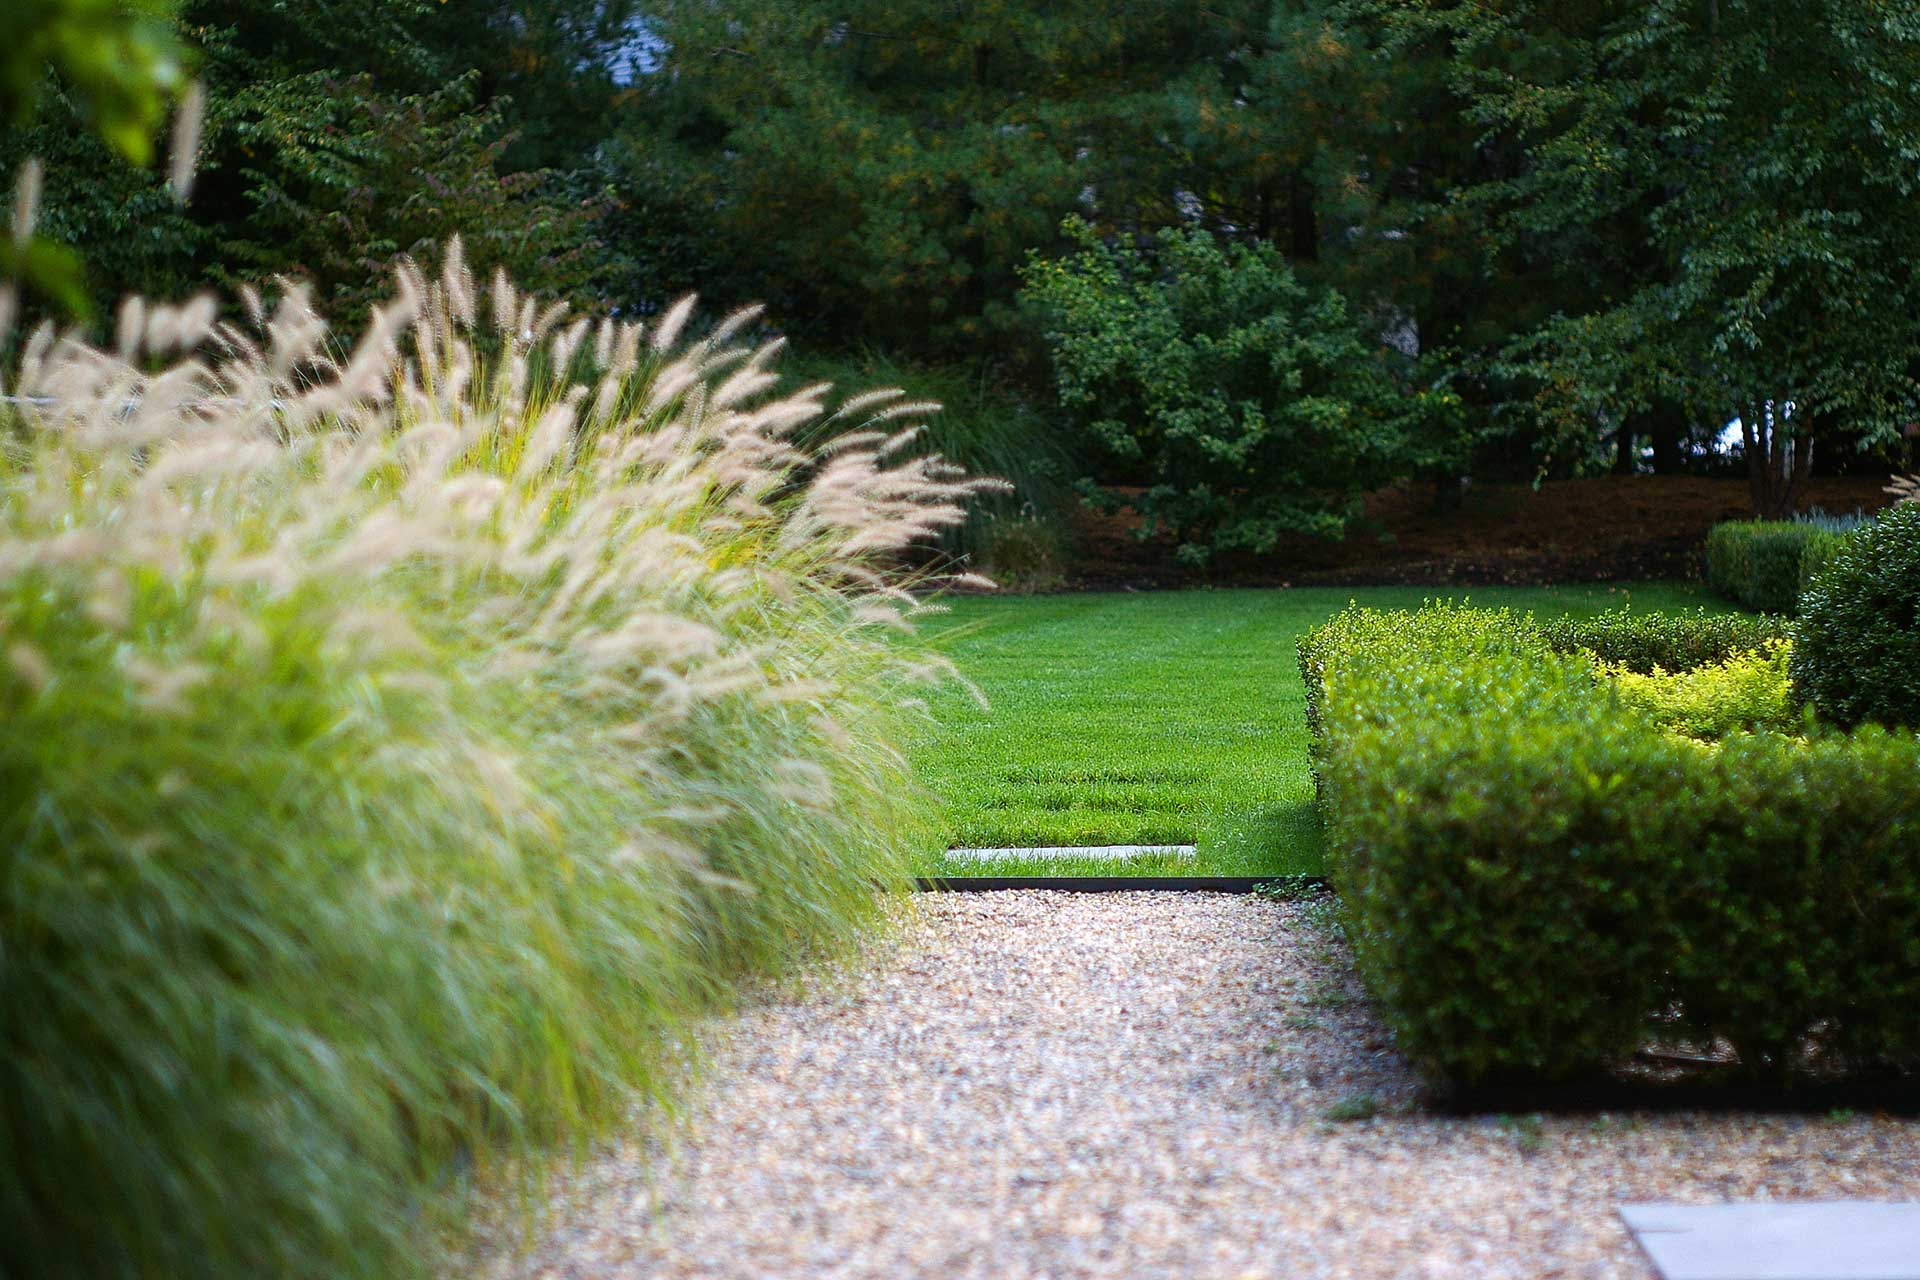 Ornamental grasses in a contemporary garden by a Blade of Grass